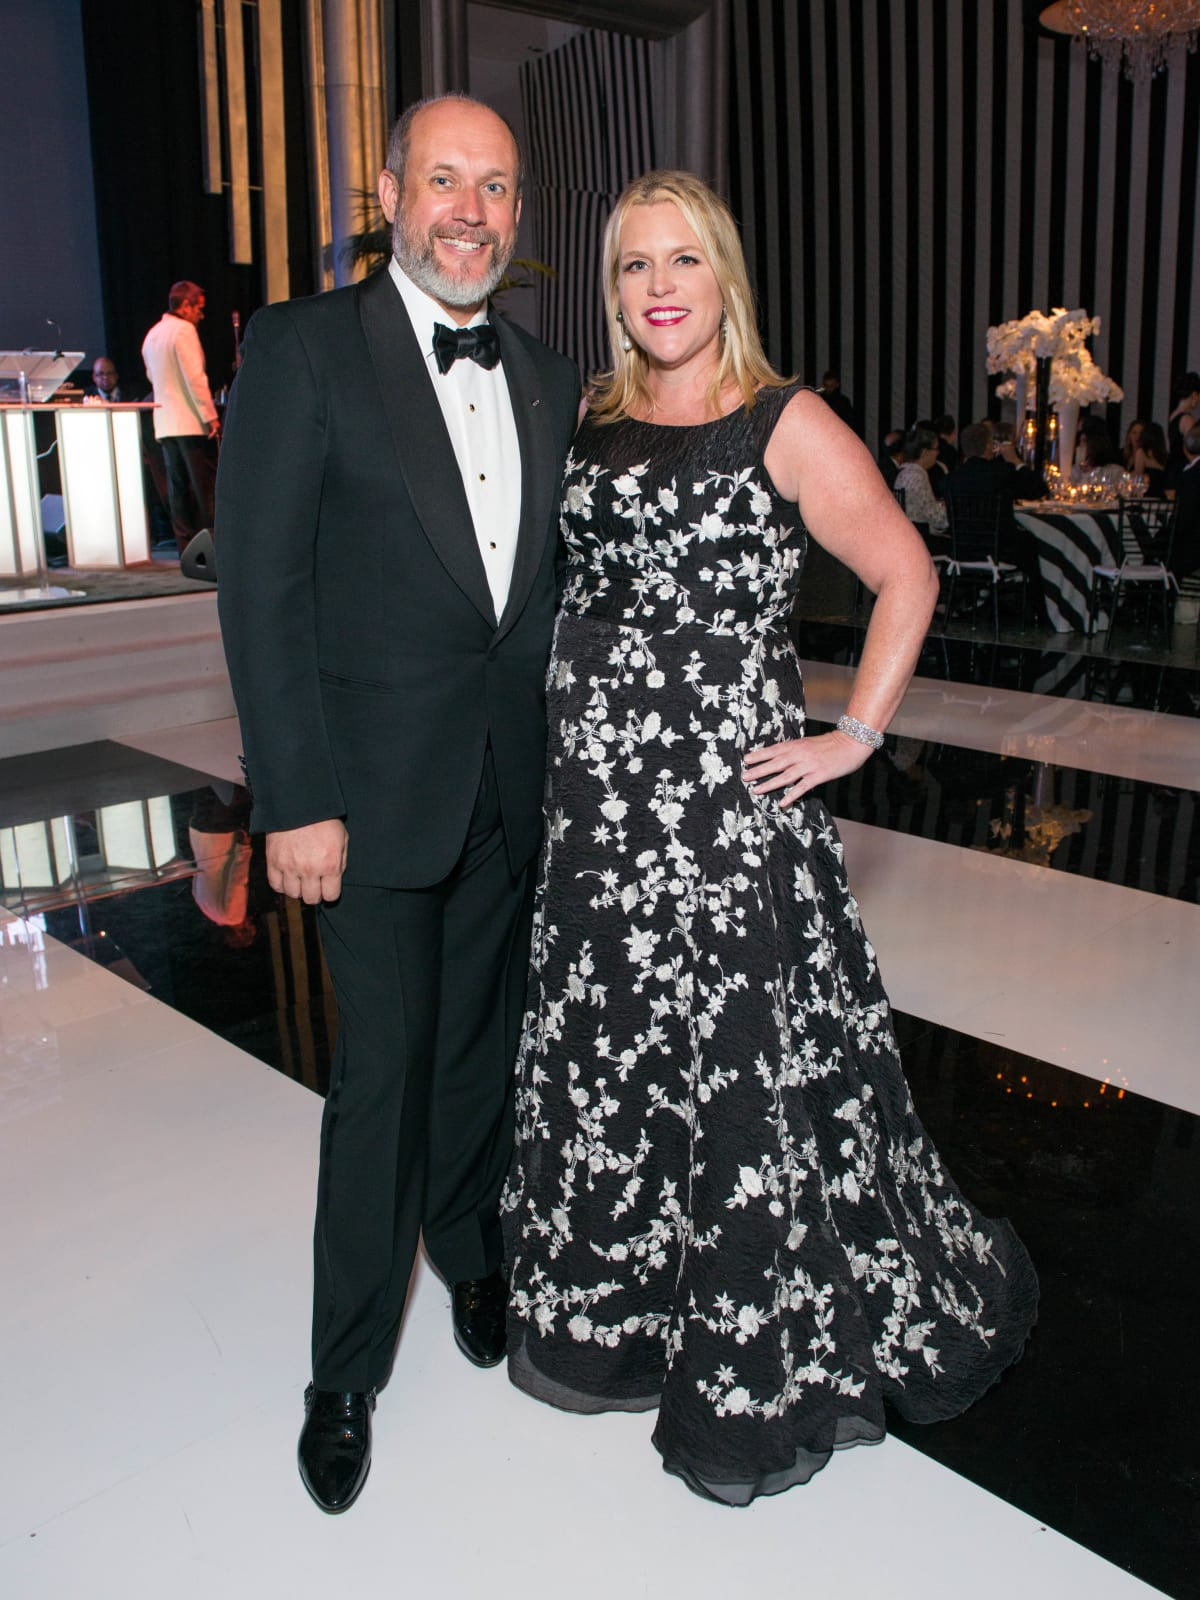 News, Shelby, Museum of Fine Arts gala, Oct. 2015, Peter Copping, Marjorie Gubelmann